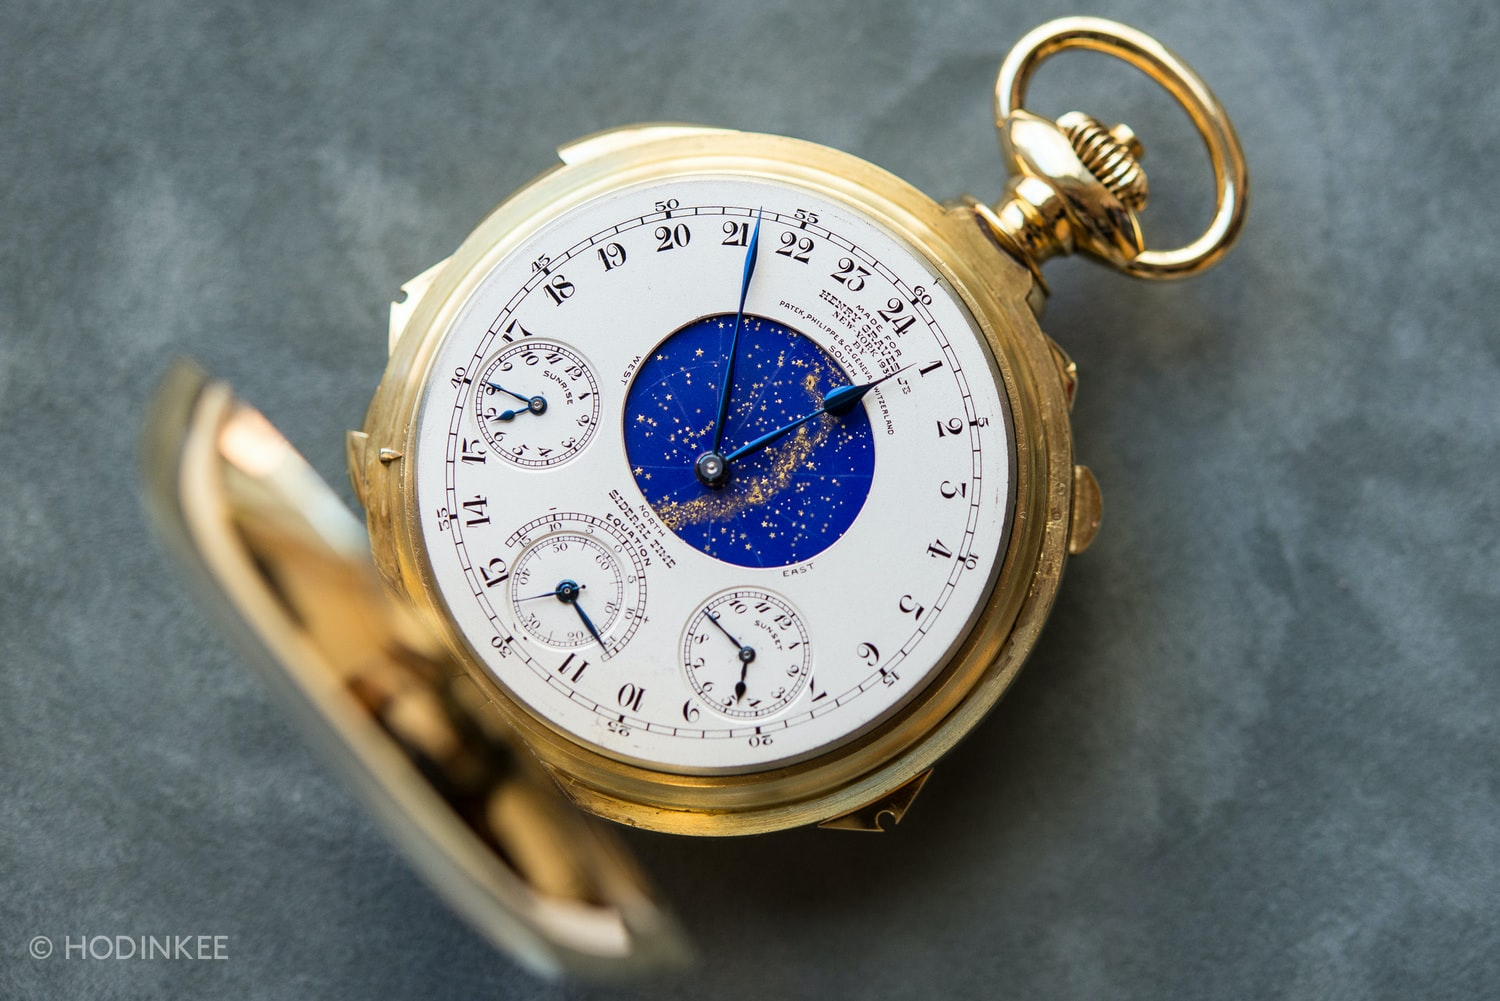 img.jpg?ixlib=rails 1.1 In-Depth: Why Clocks Run Clockwise (And Some Watches And Clocks That Don't) In-Depth: Why Clocks Run Clockwise (And Some Watches And Clocks That Don't)  img